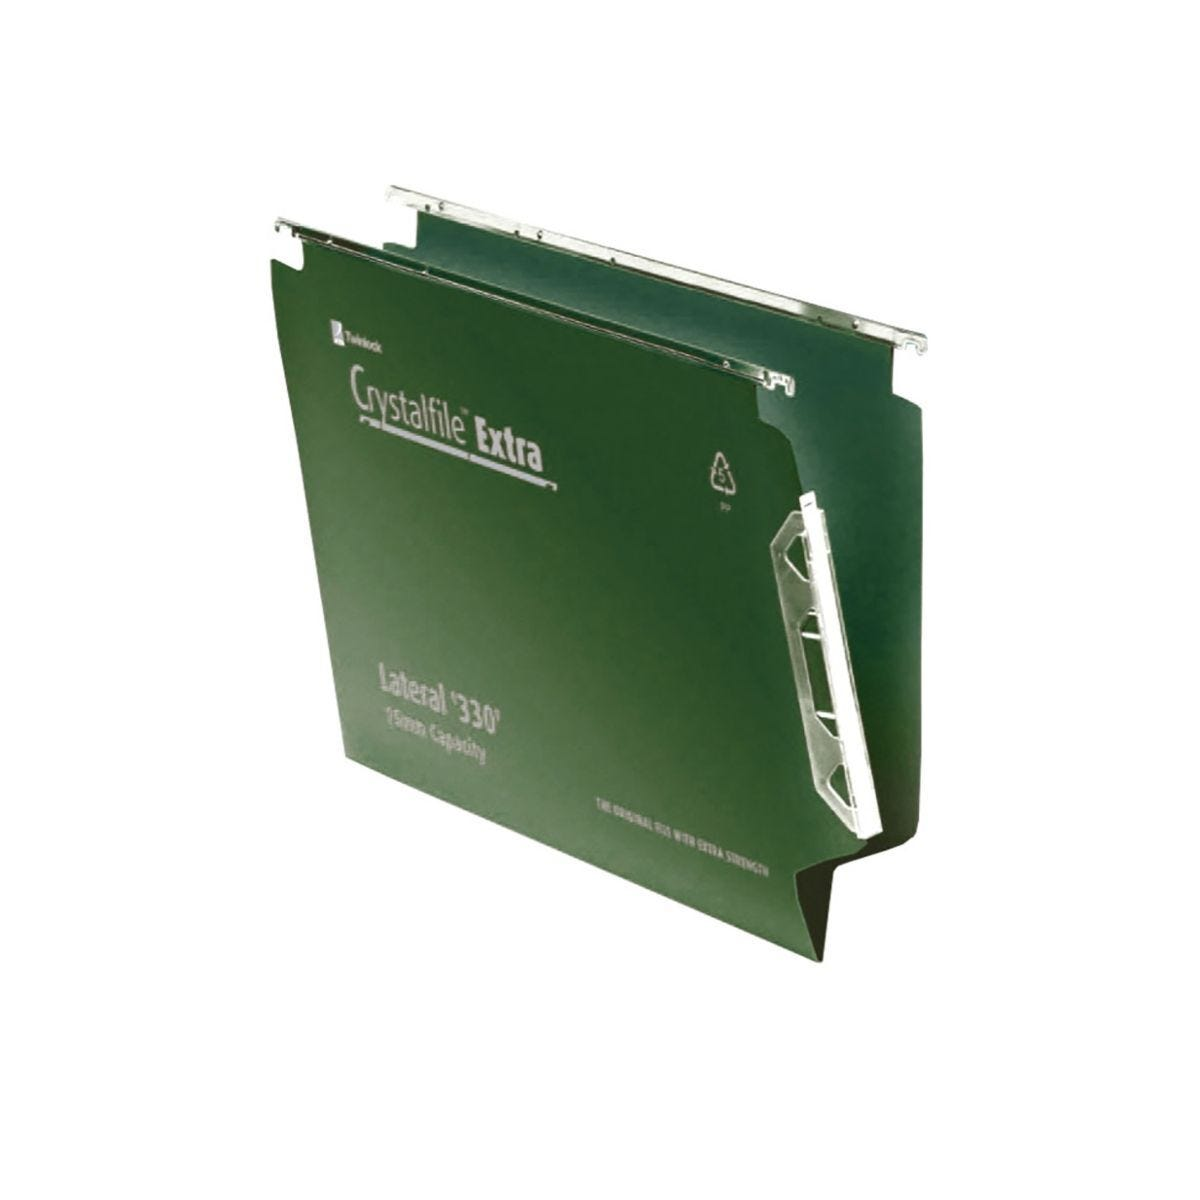 Rexel Crystalfile Extra 330 Lateral Suspension File 15mm Pack of 25